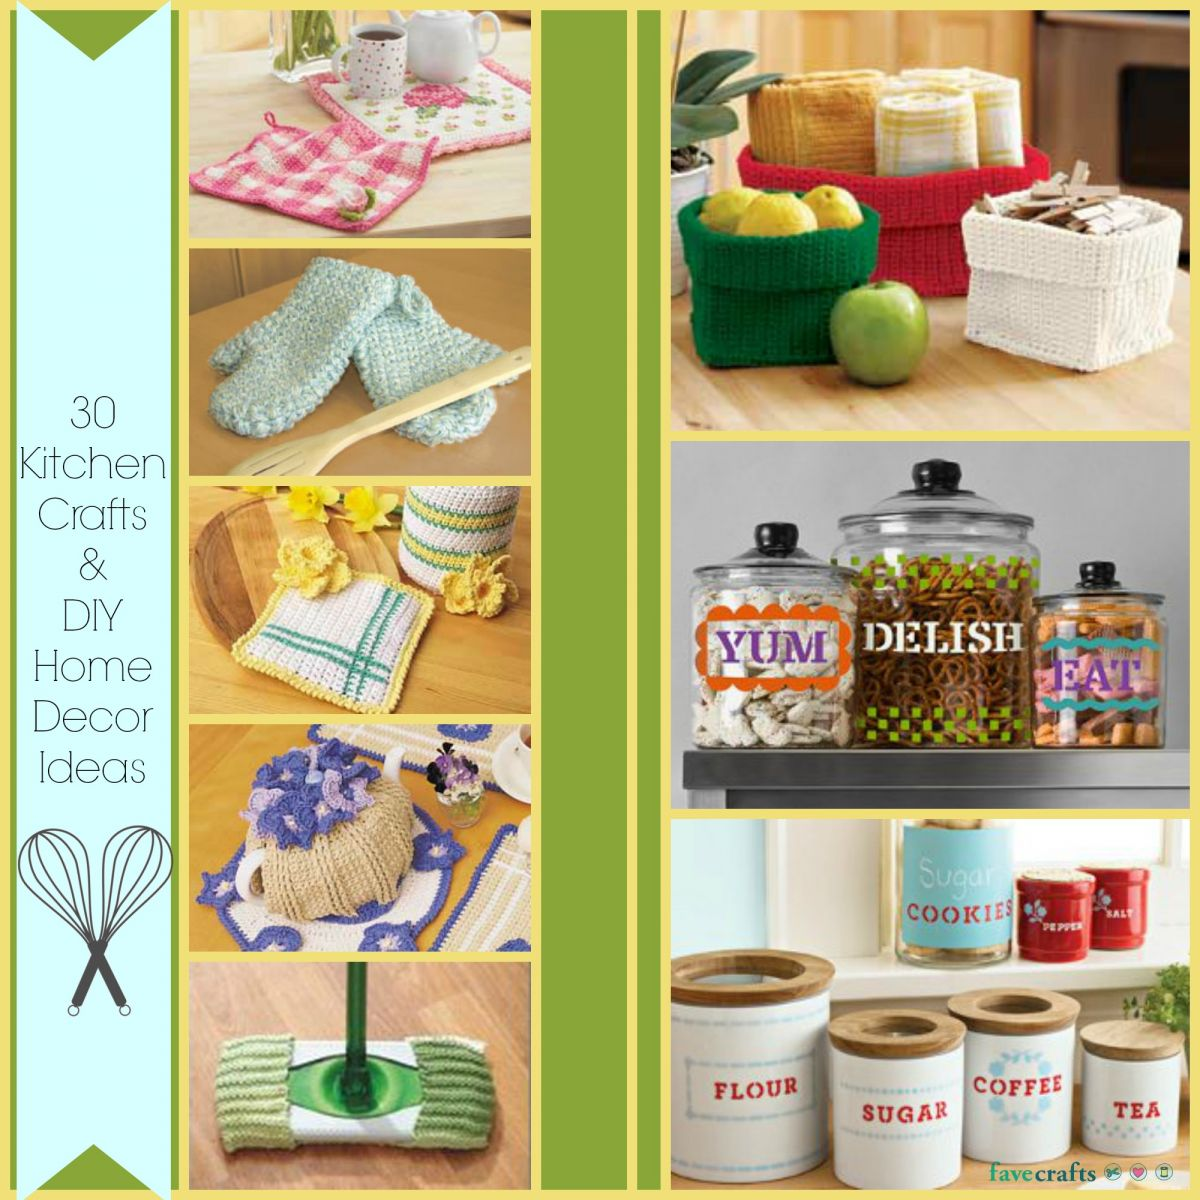 30 kitchen crafts and diy home decor ideas for Home made decorative items